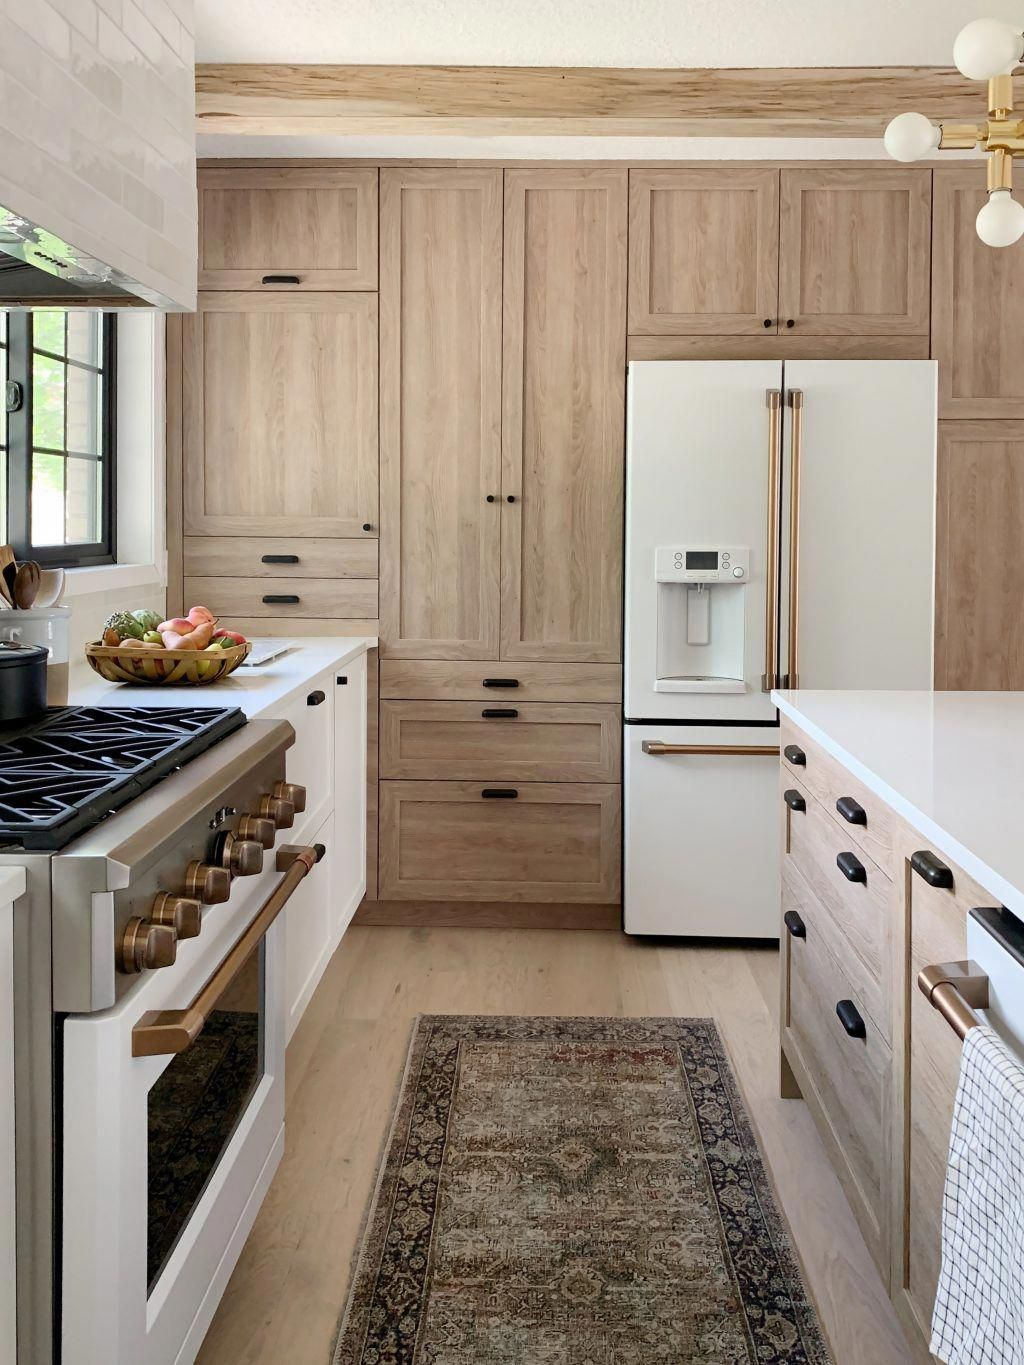 The Cove Cabinets From Our Line With Semihandmade Are Definitely A Statement Piece So Are The White And Brus In 2020 Home Kitchens Kitchen Design Kitchen Inspirations